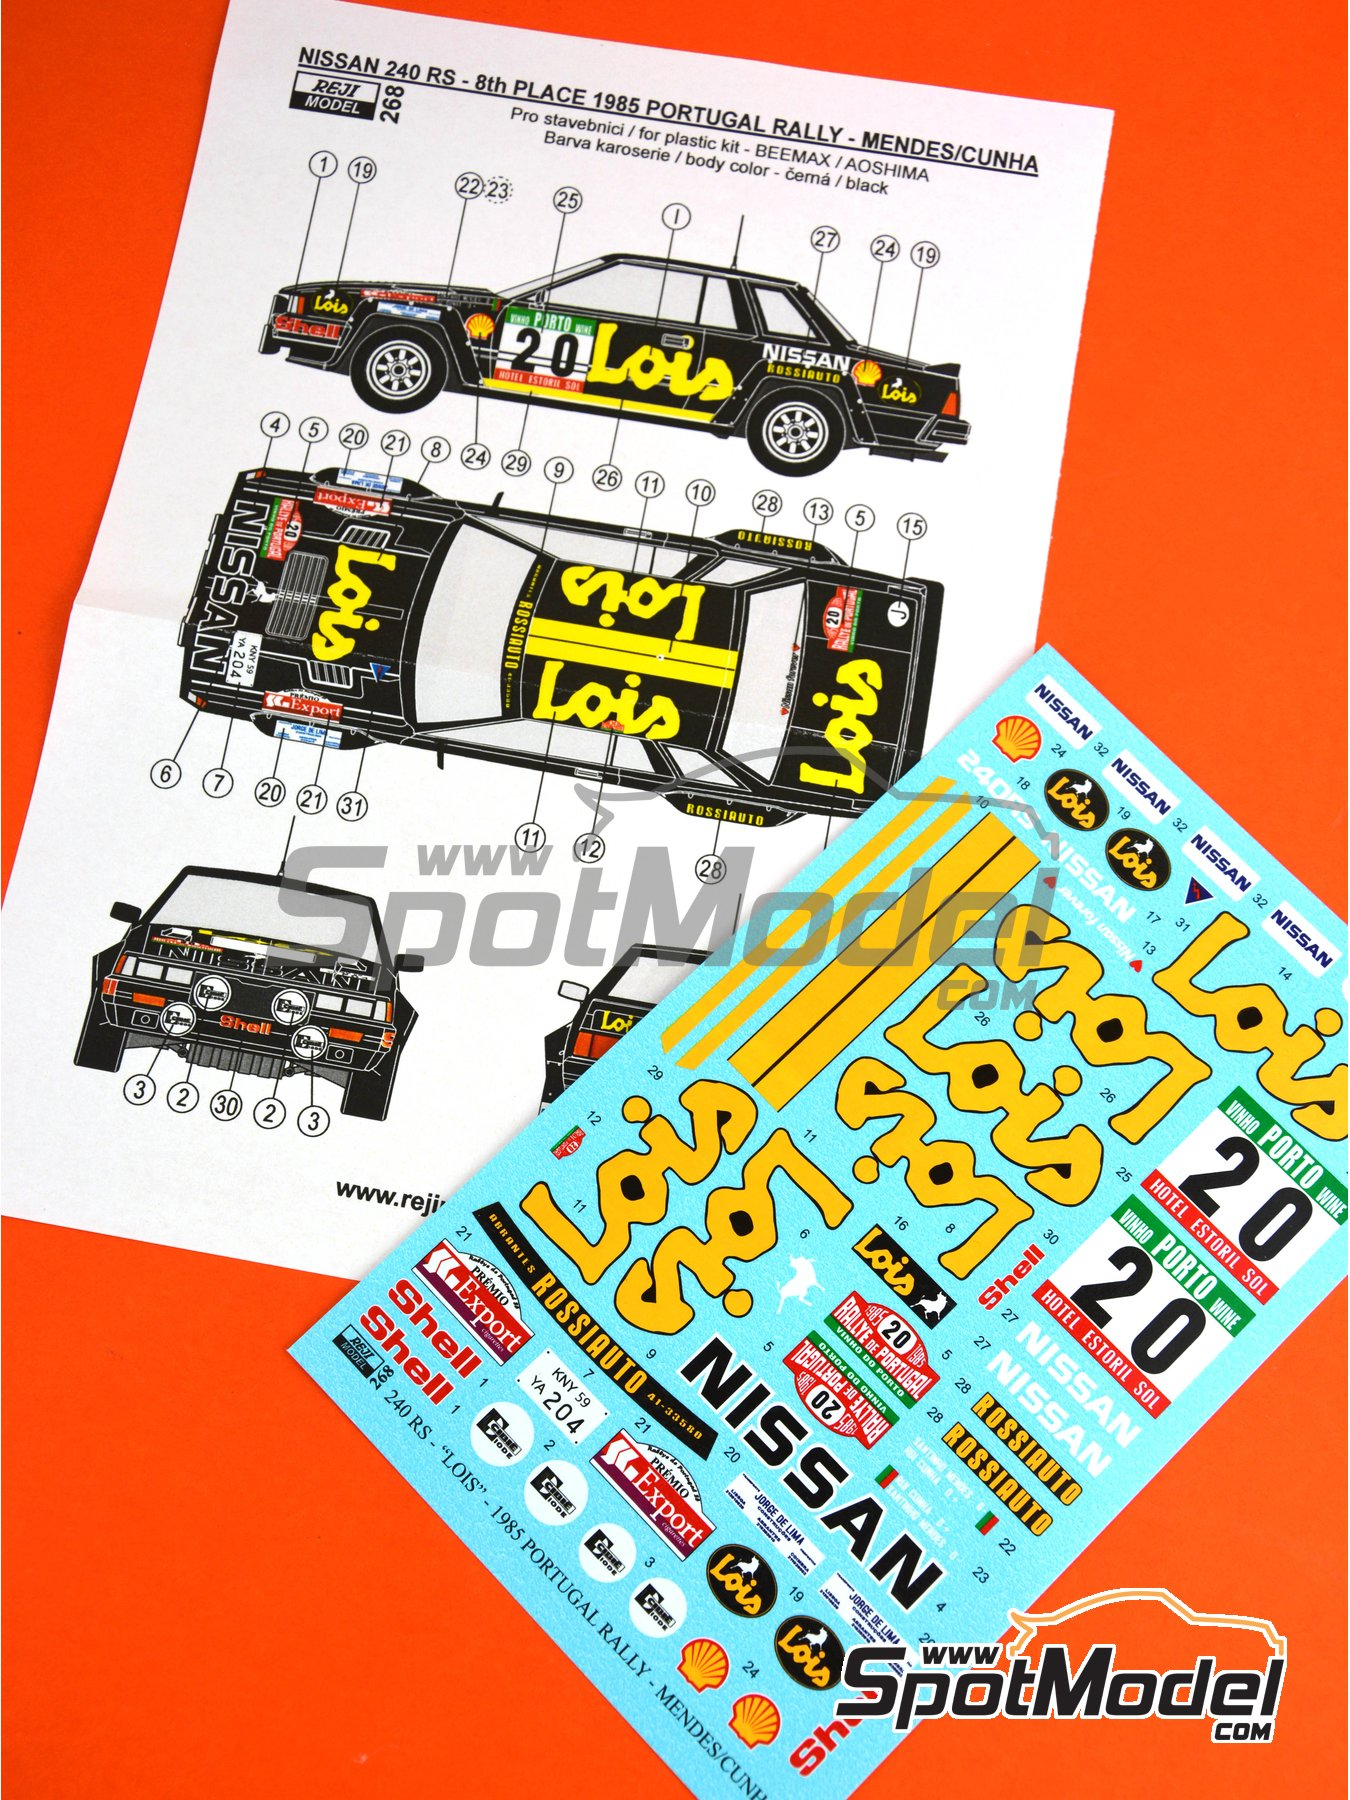 Nissan 240 RS - Portugal Rally 1985 | Marking / livery in 1/24 scale manufactured by Reji Model (ref. REJI-268) image